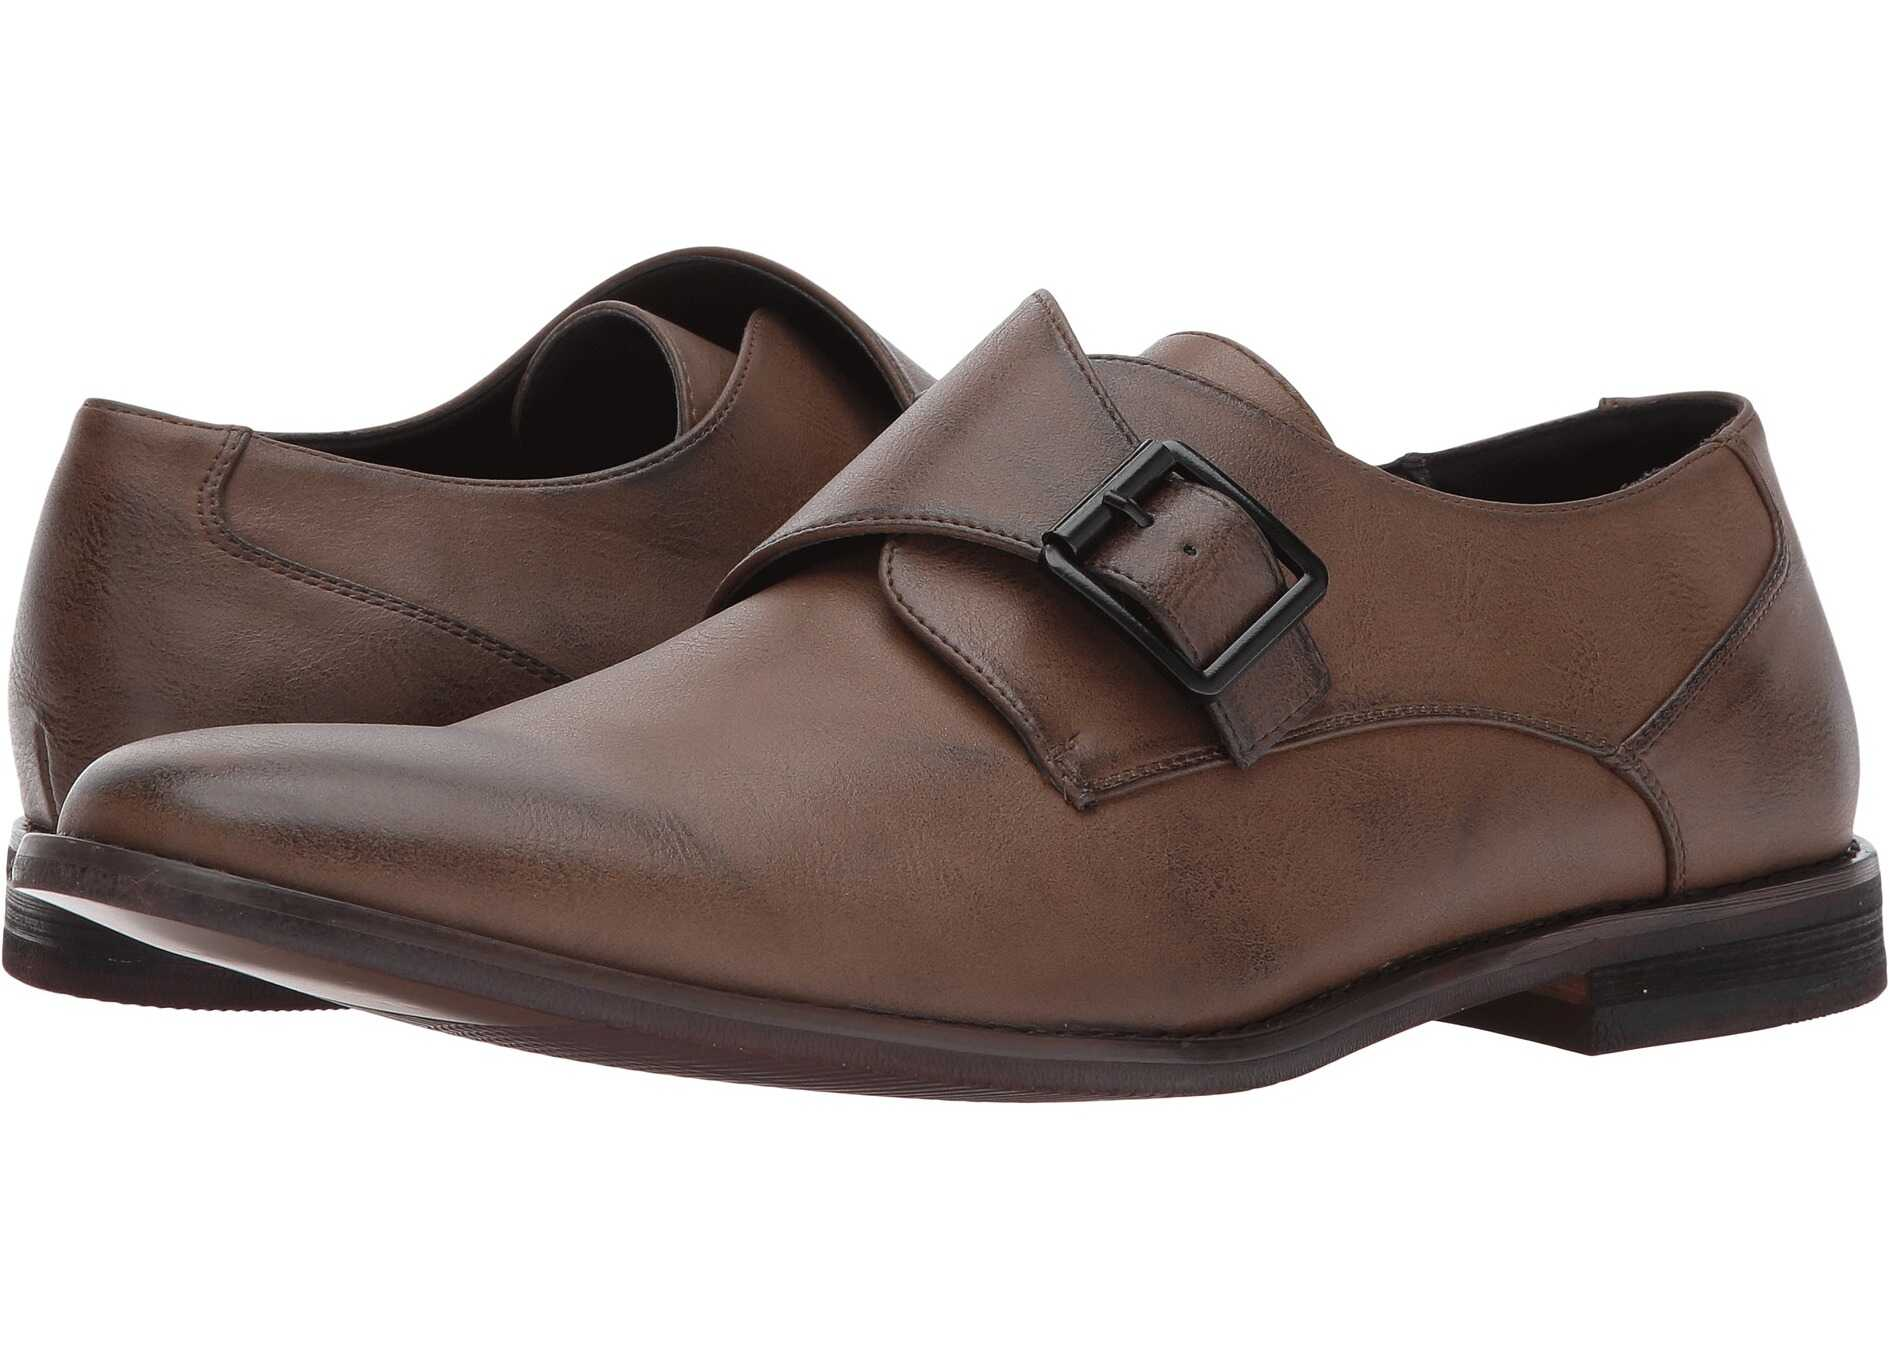 Kenneth Cole Unlisted Design 30124 Brown